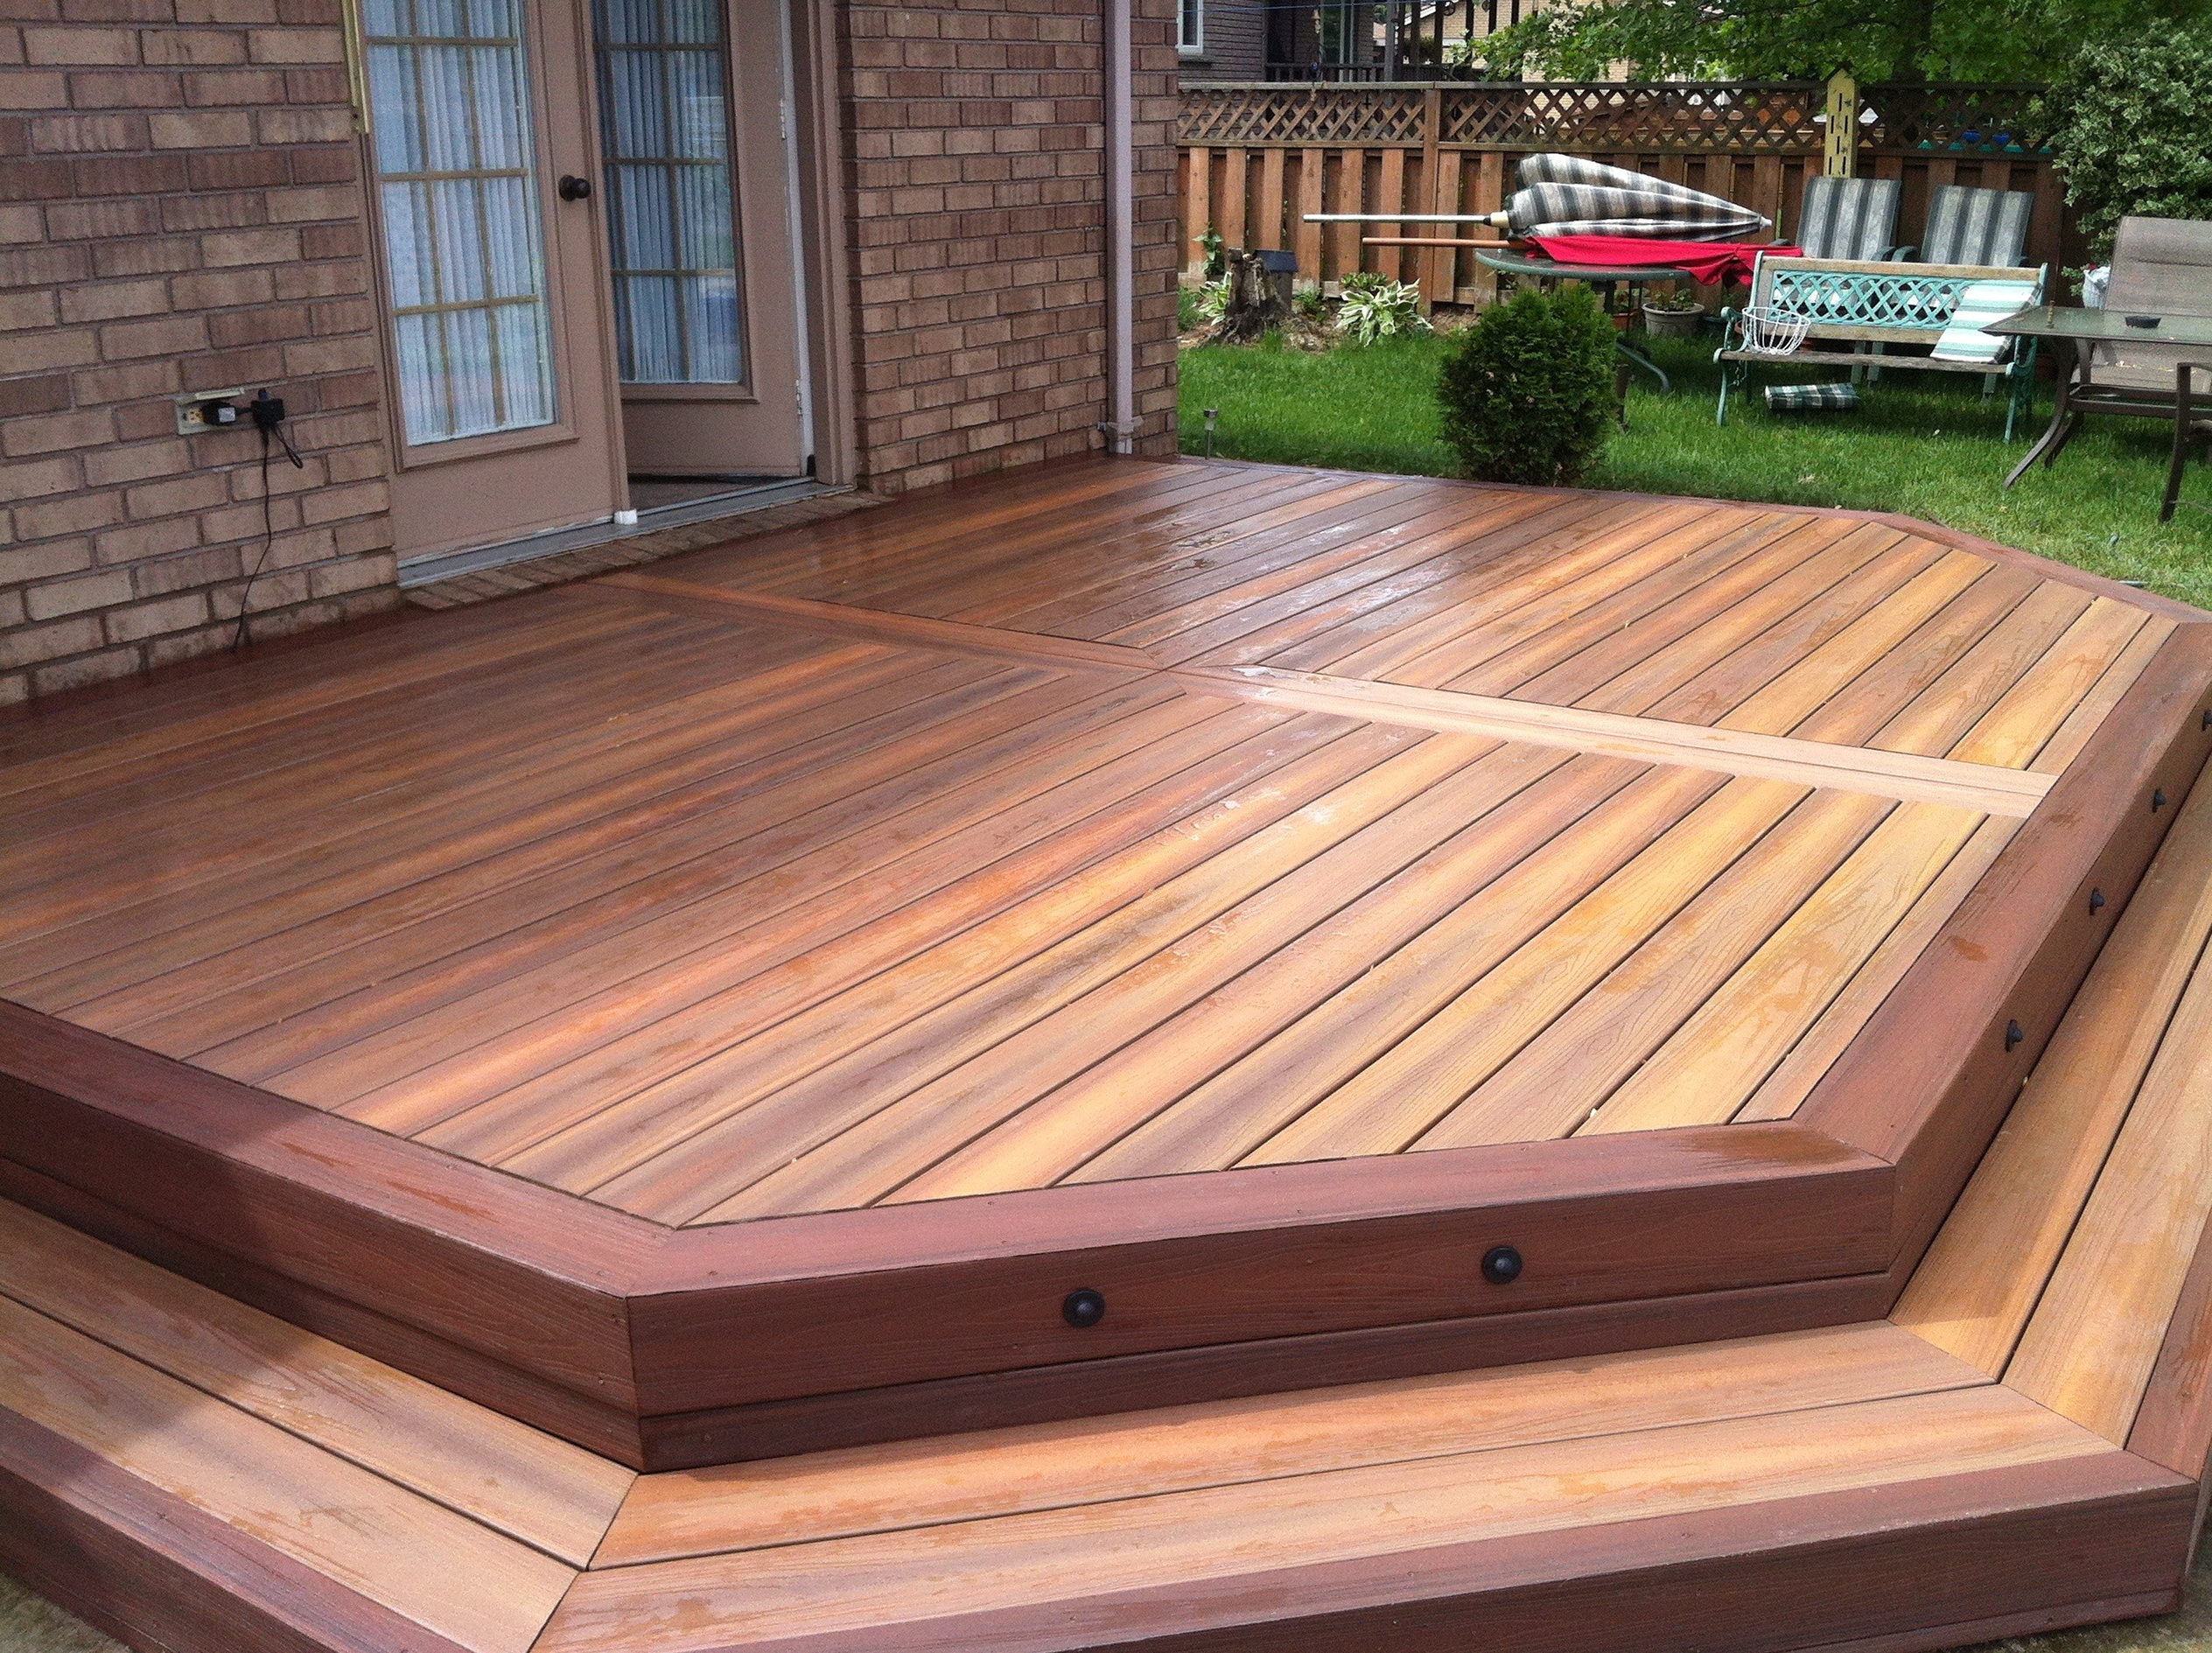 Trex Composite Wood | Home Depot Deck Installation | Installing Composite Decking